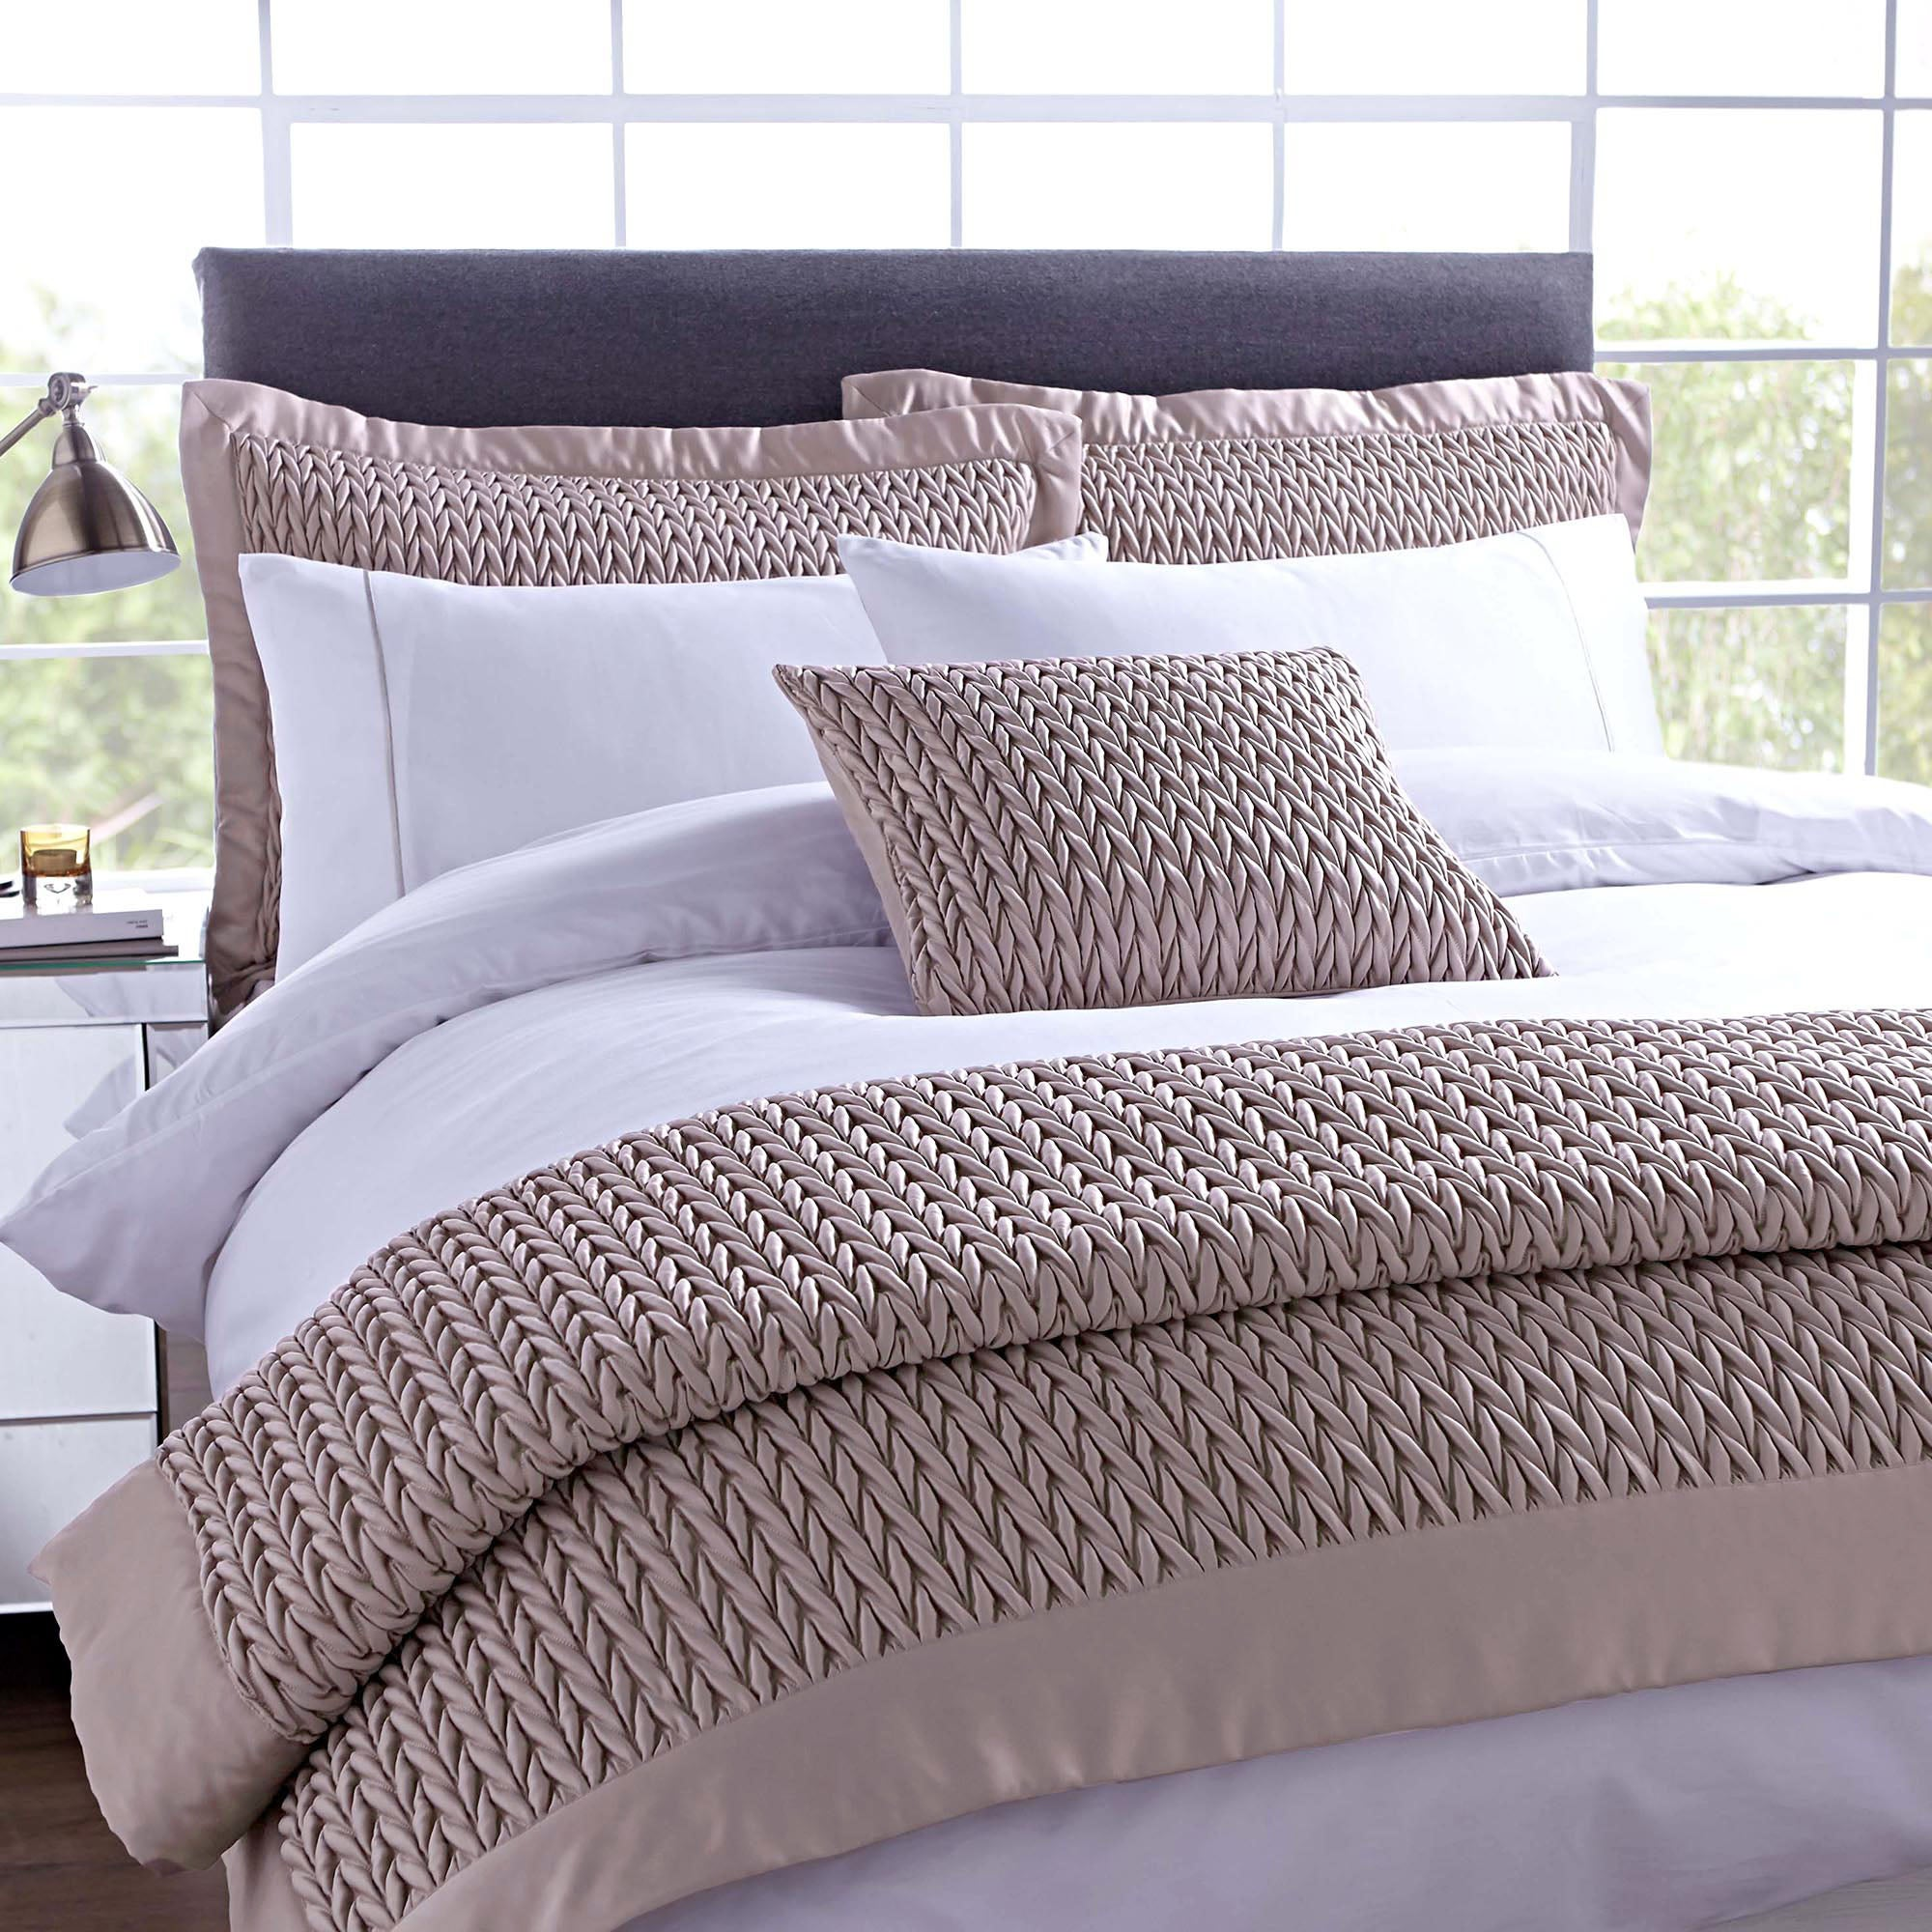 Hotel Piccadilly Champagne Bed Linen Collection